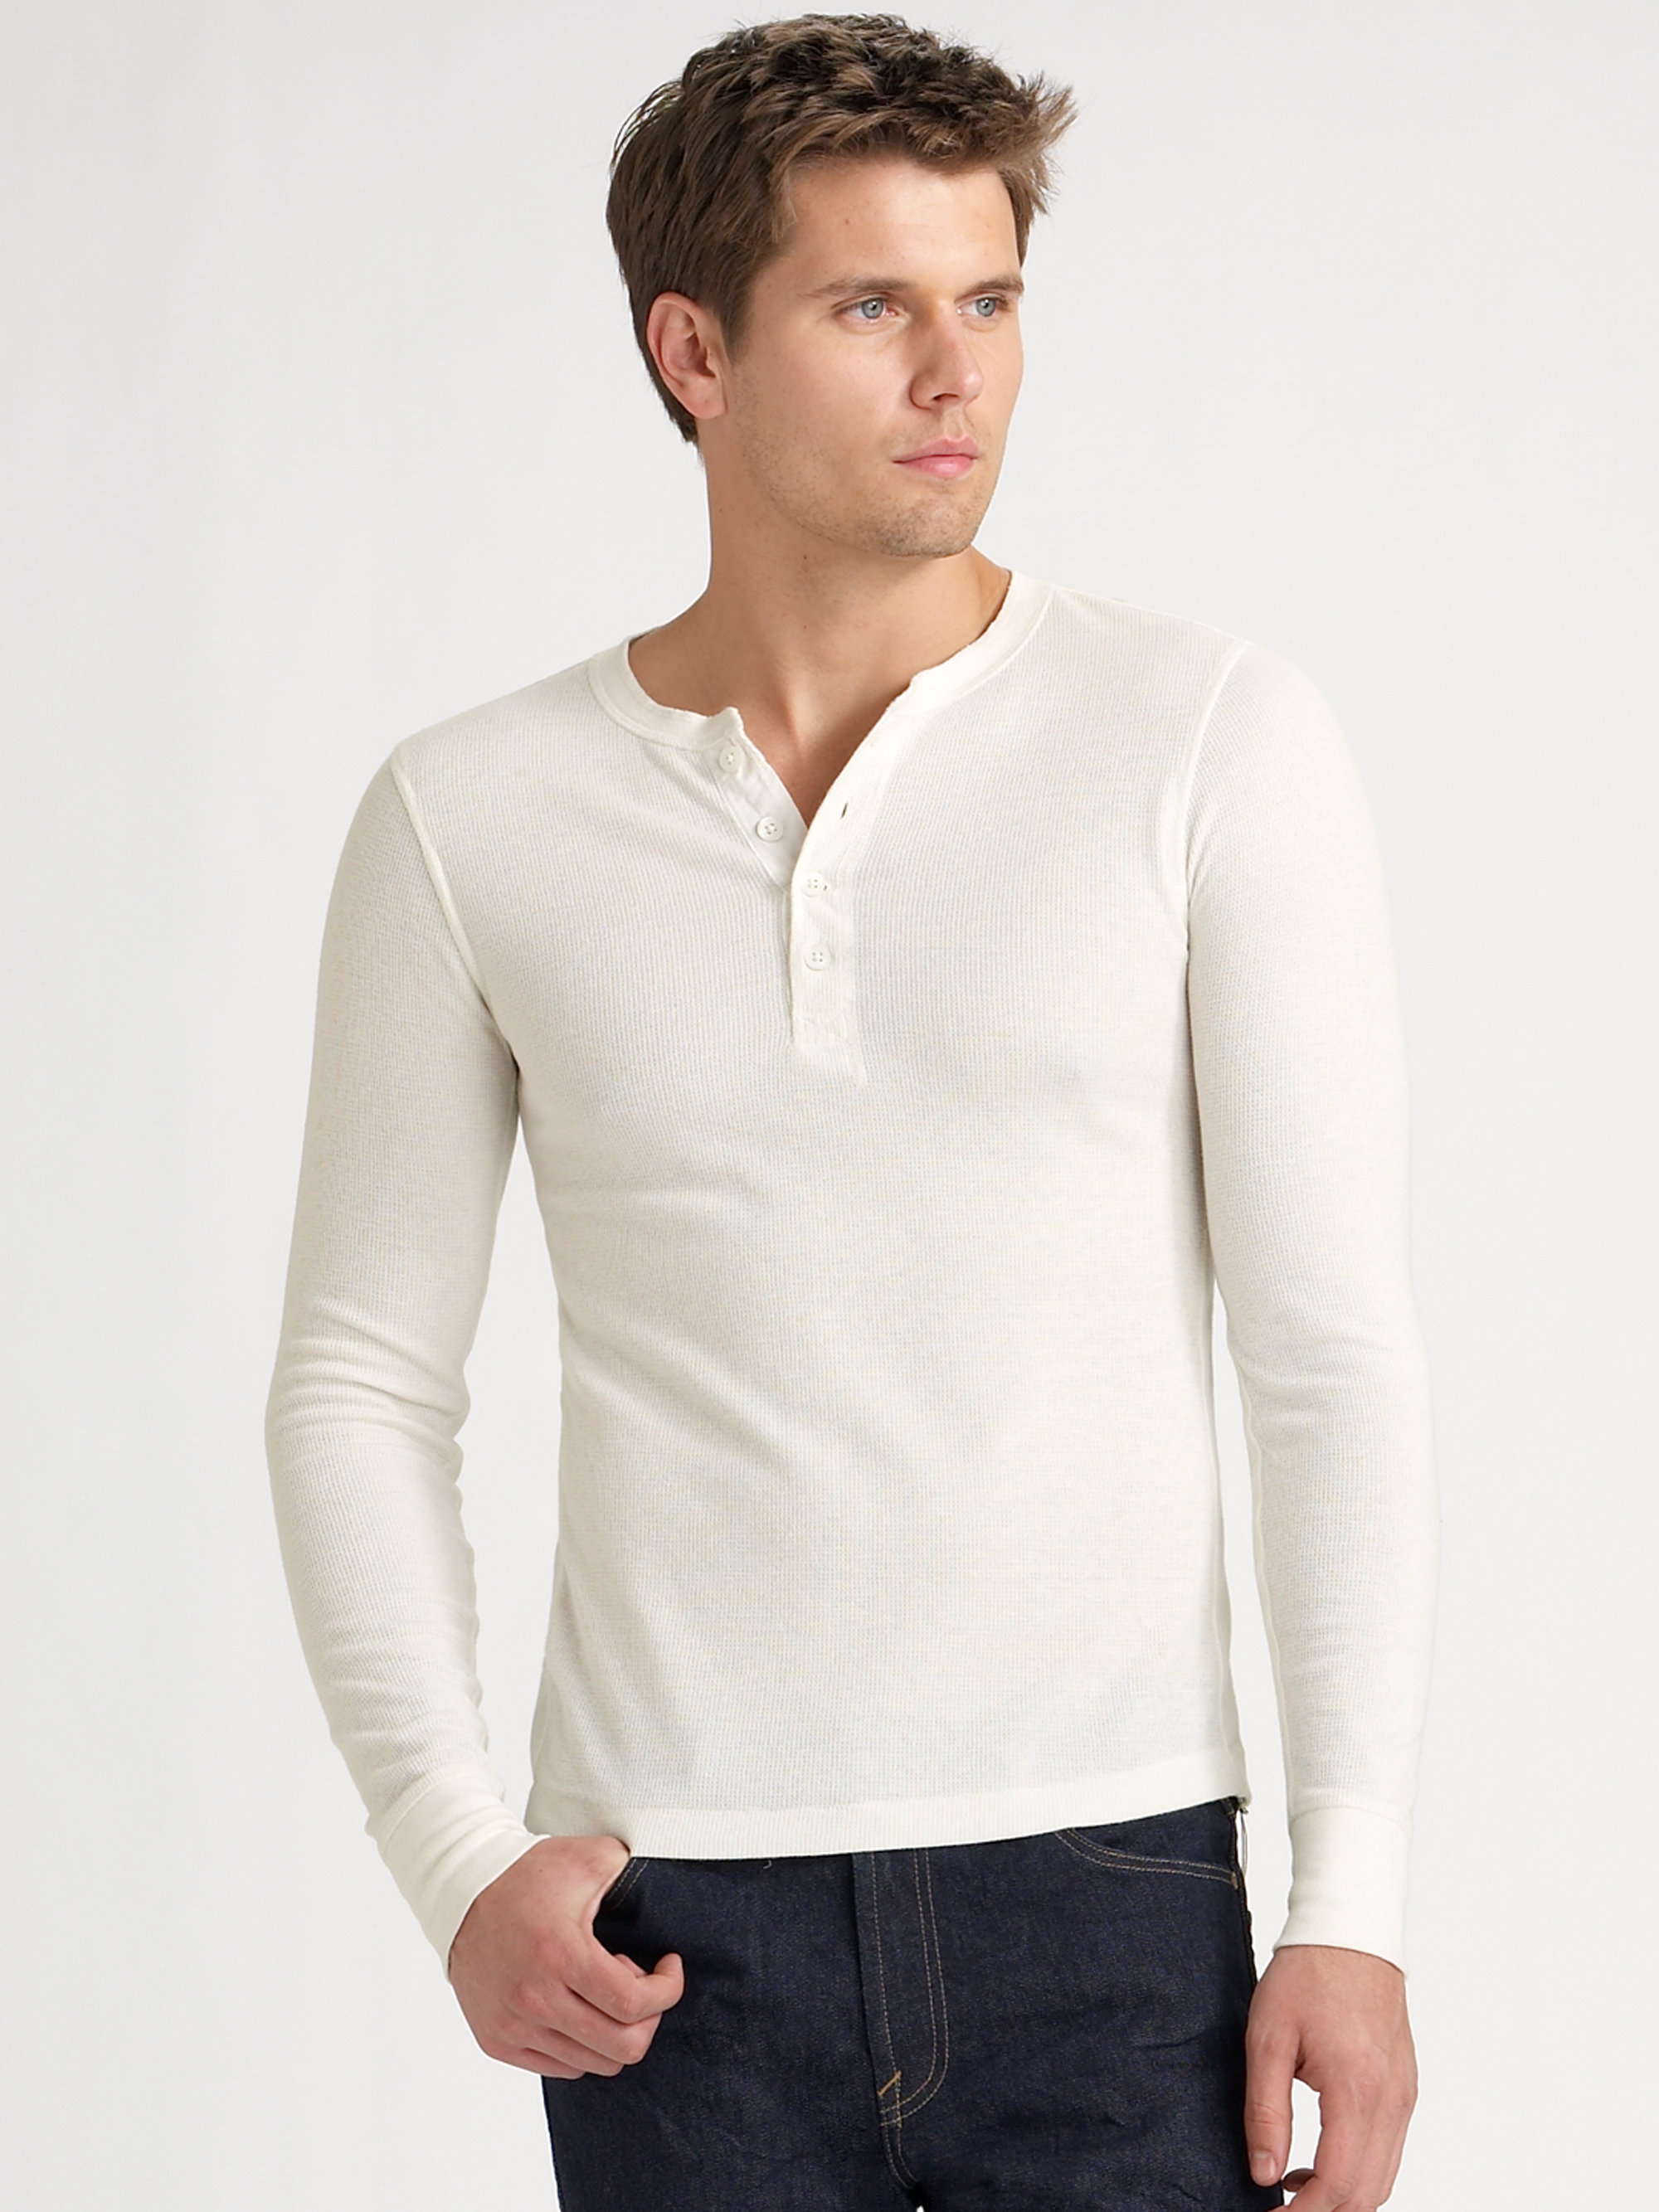 Henleys pair perfectly with any of our mens jeans or plainfront shorts and go surprisingly well with dressier pant and jacket options. For work, for play, or straight up lounging, a henley is appropriate for every man's lifestyle.